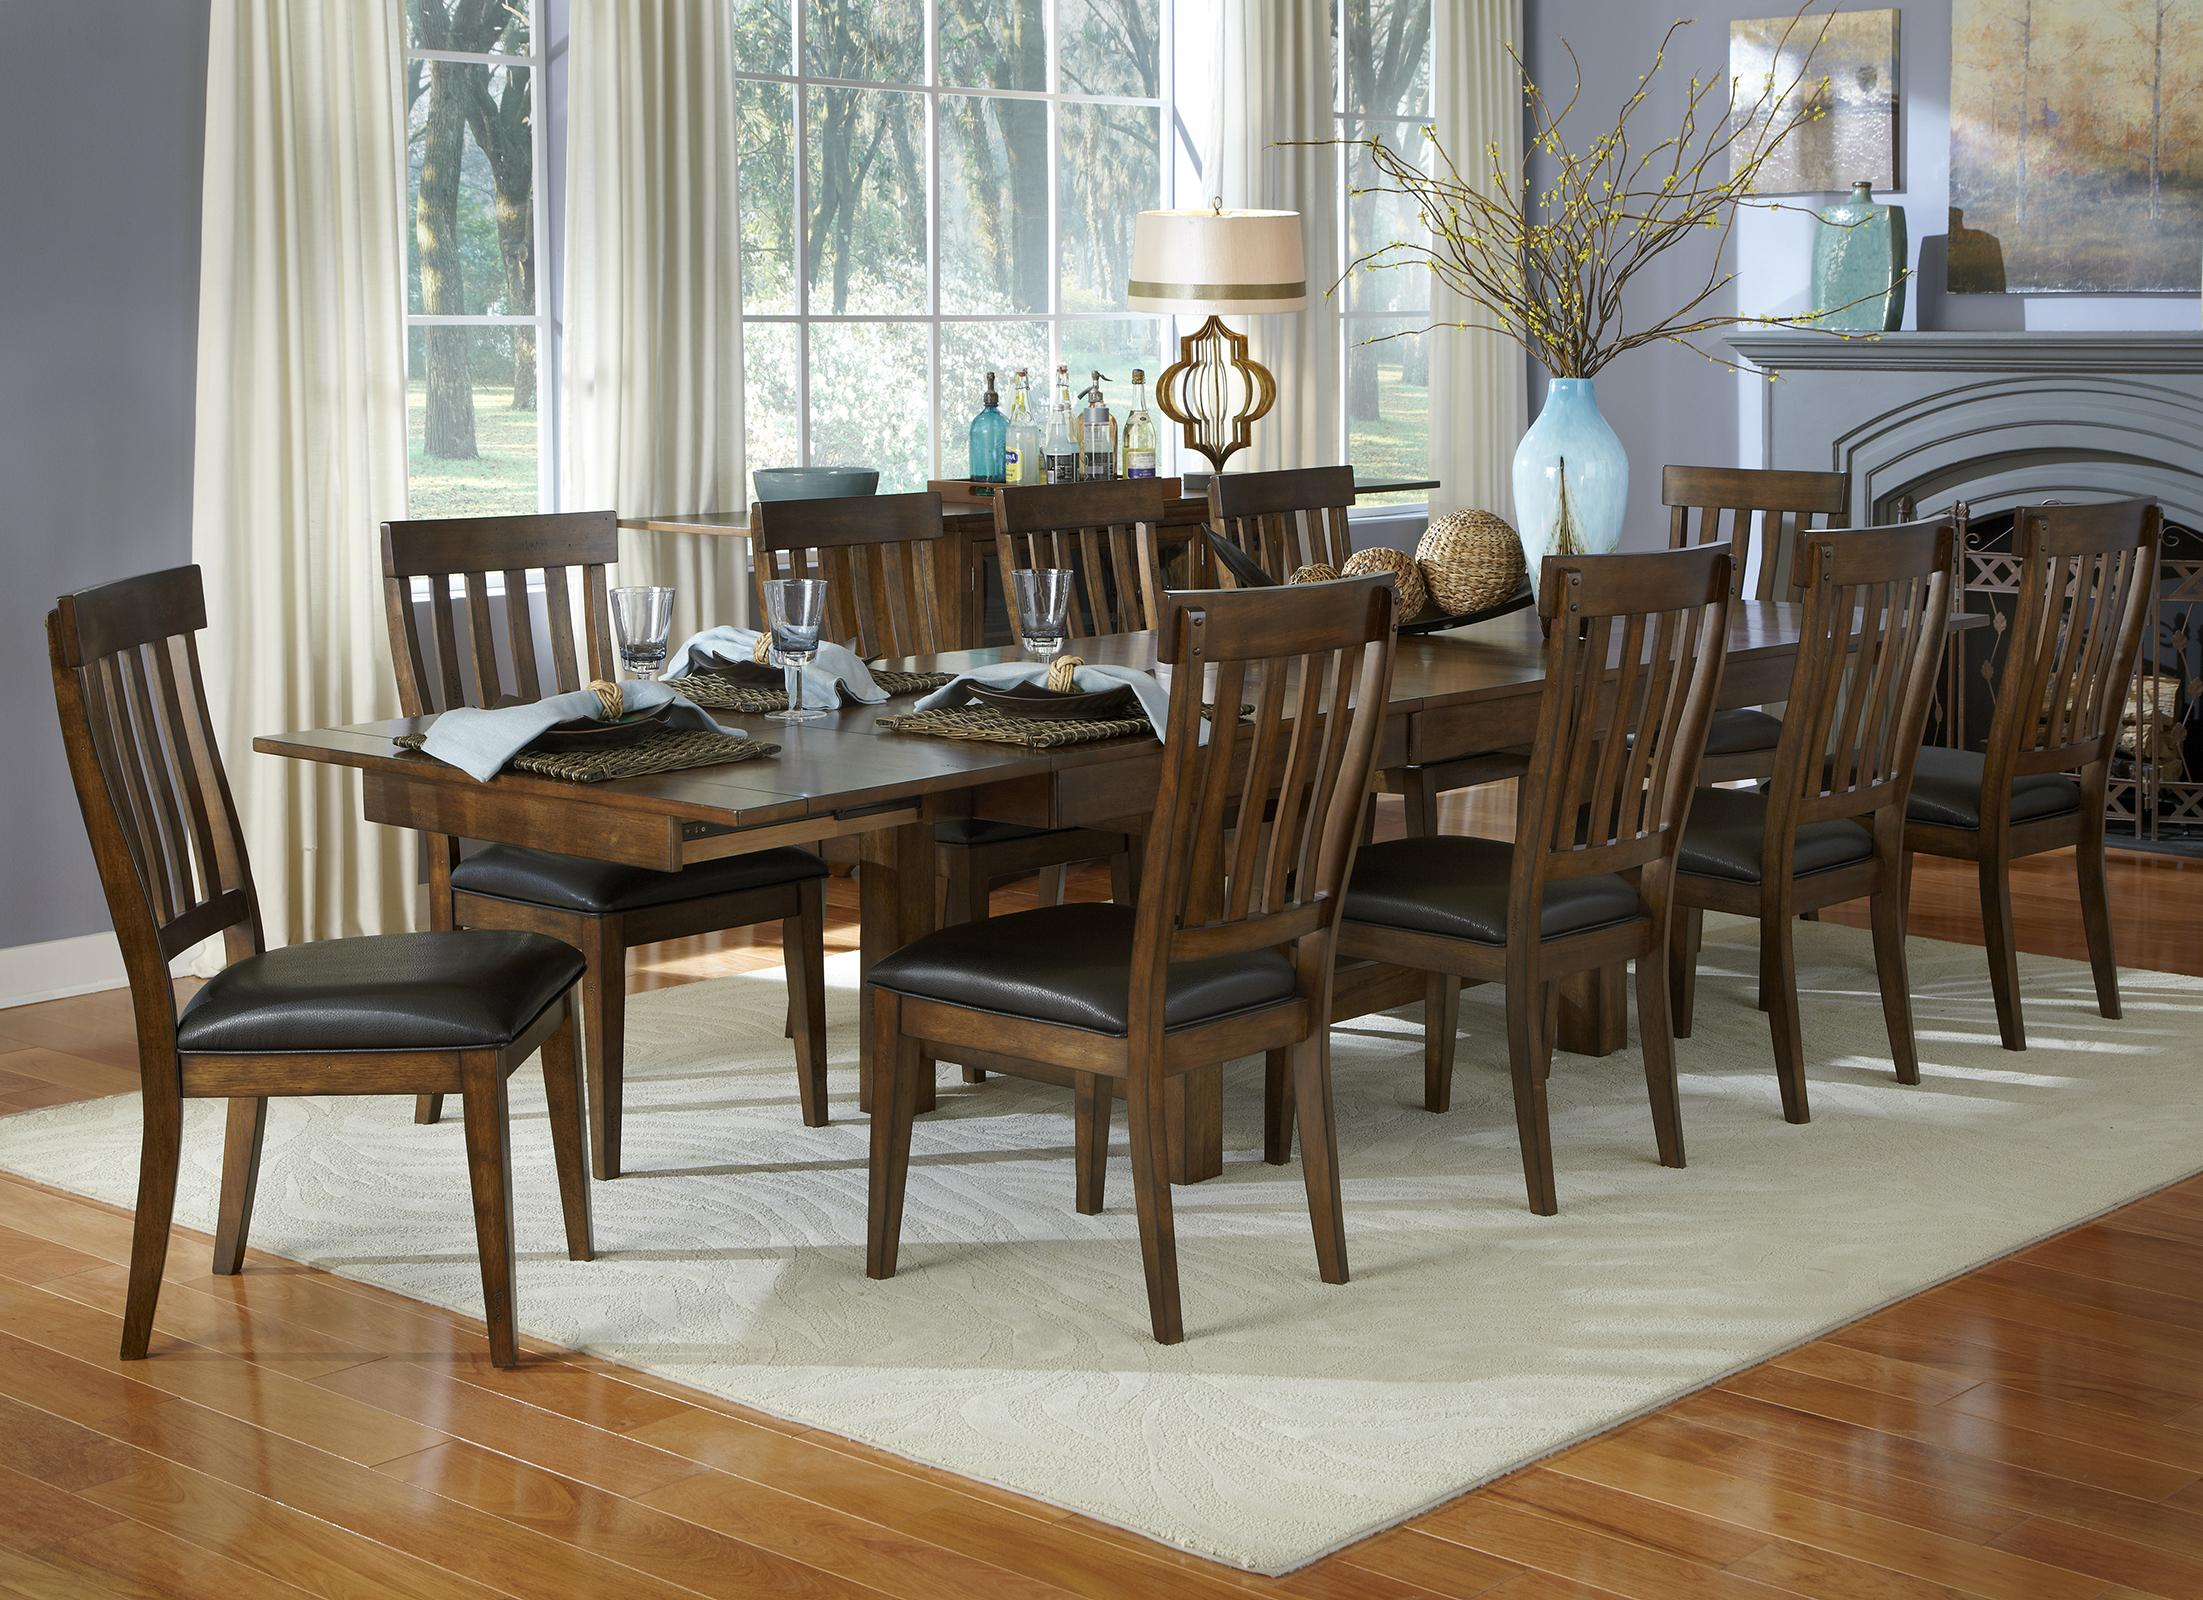 AAmerica Mariposa 11 Piece Table and Chair Set - Item Number: MRP-RW-6-08-0+10x2-65-K